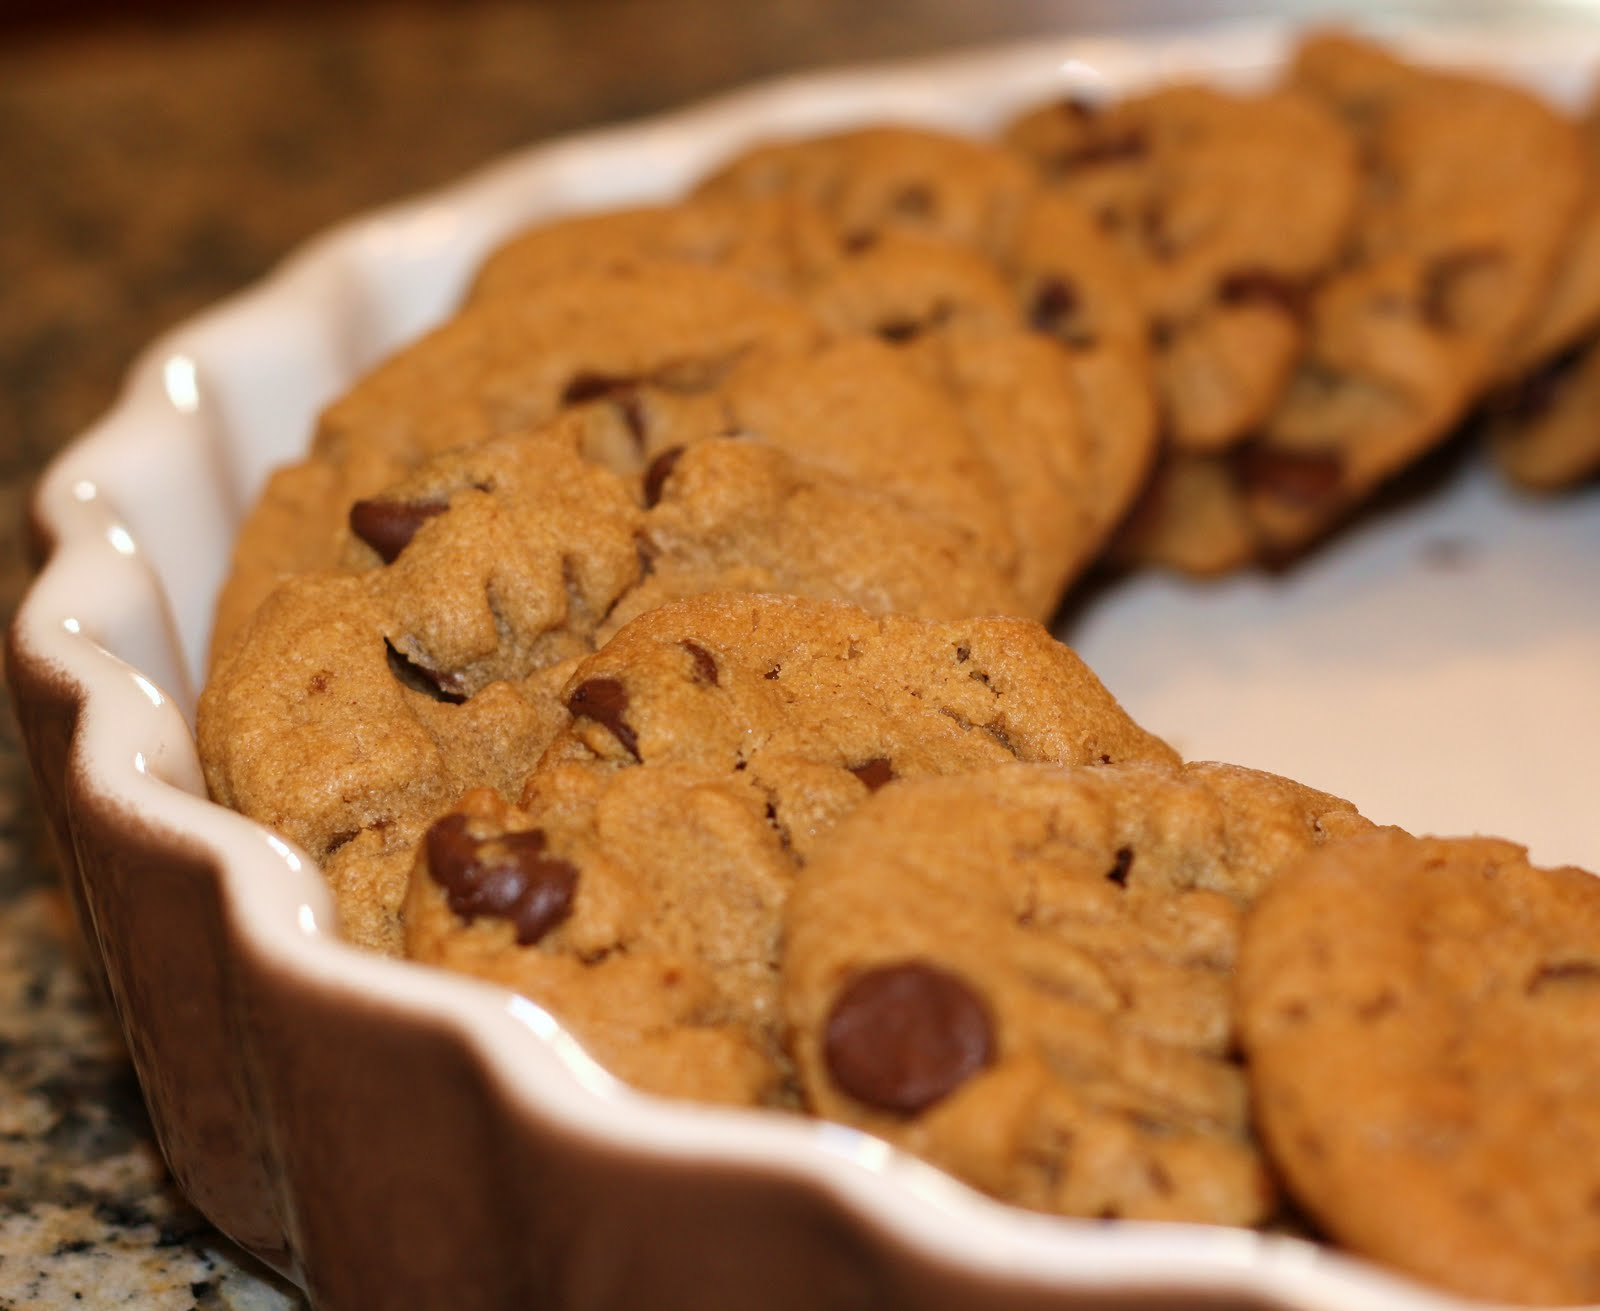 sunday sweets: peanut butter-chocolate chip cookies